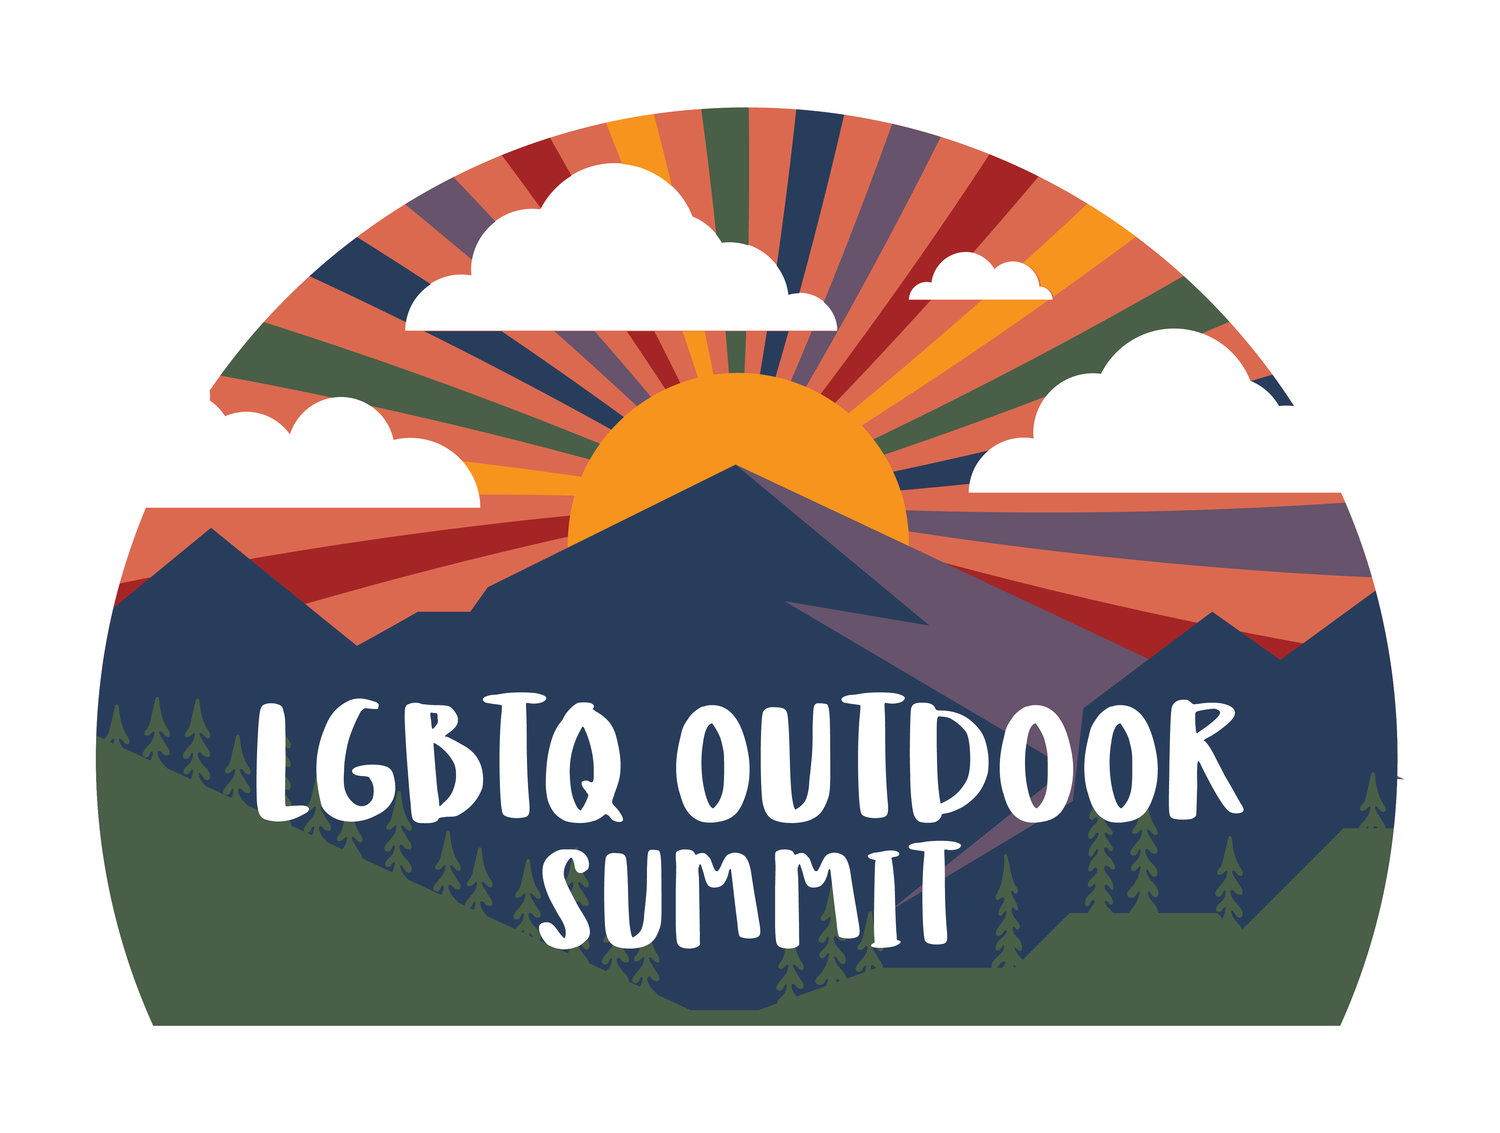 lgbtq outdoor summit